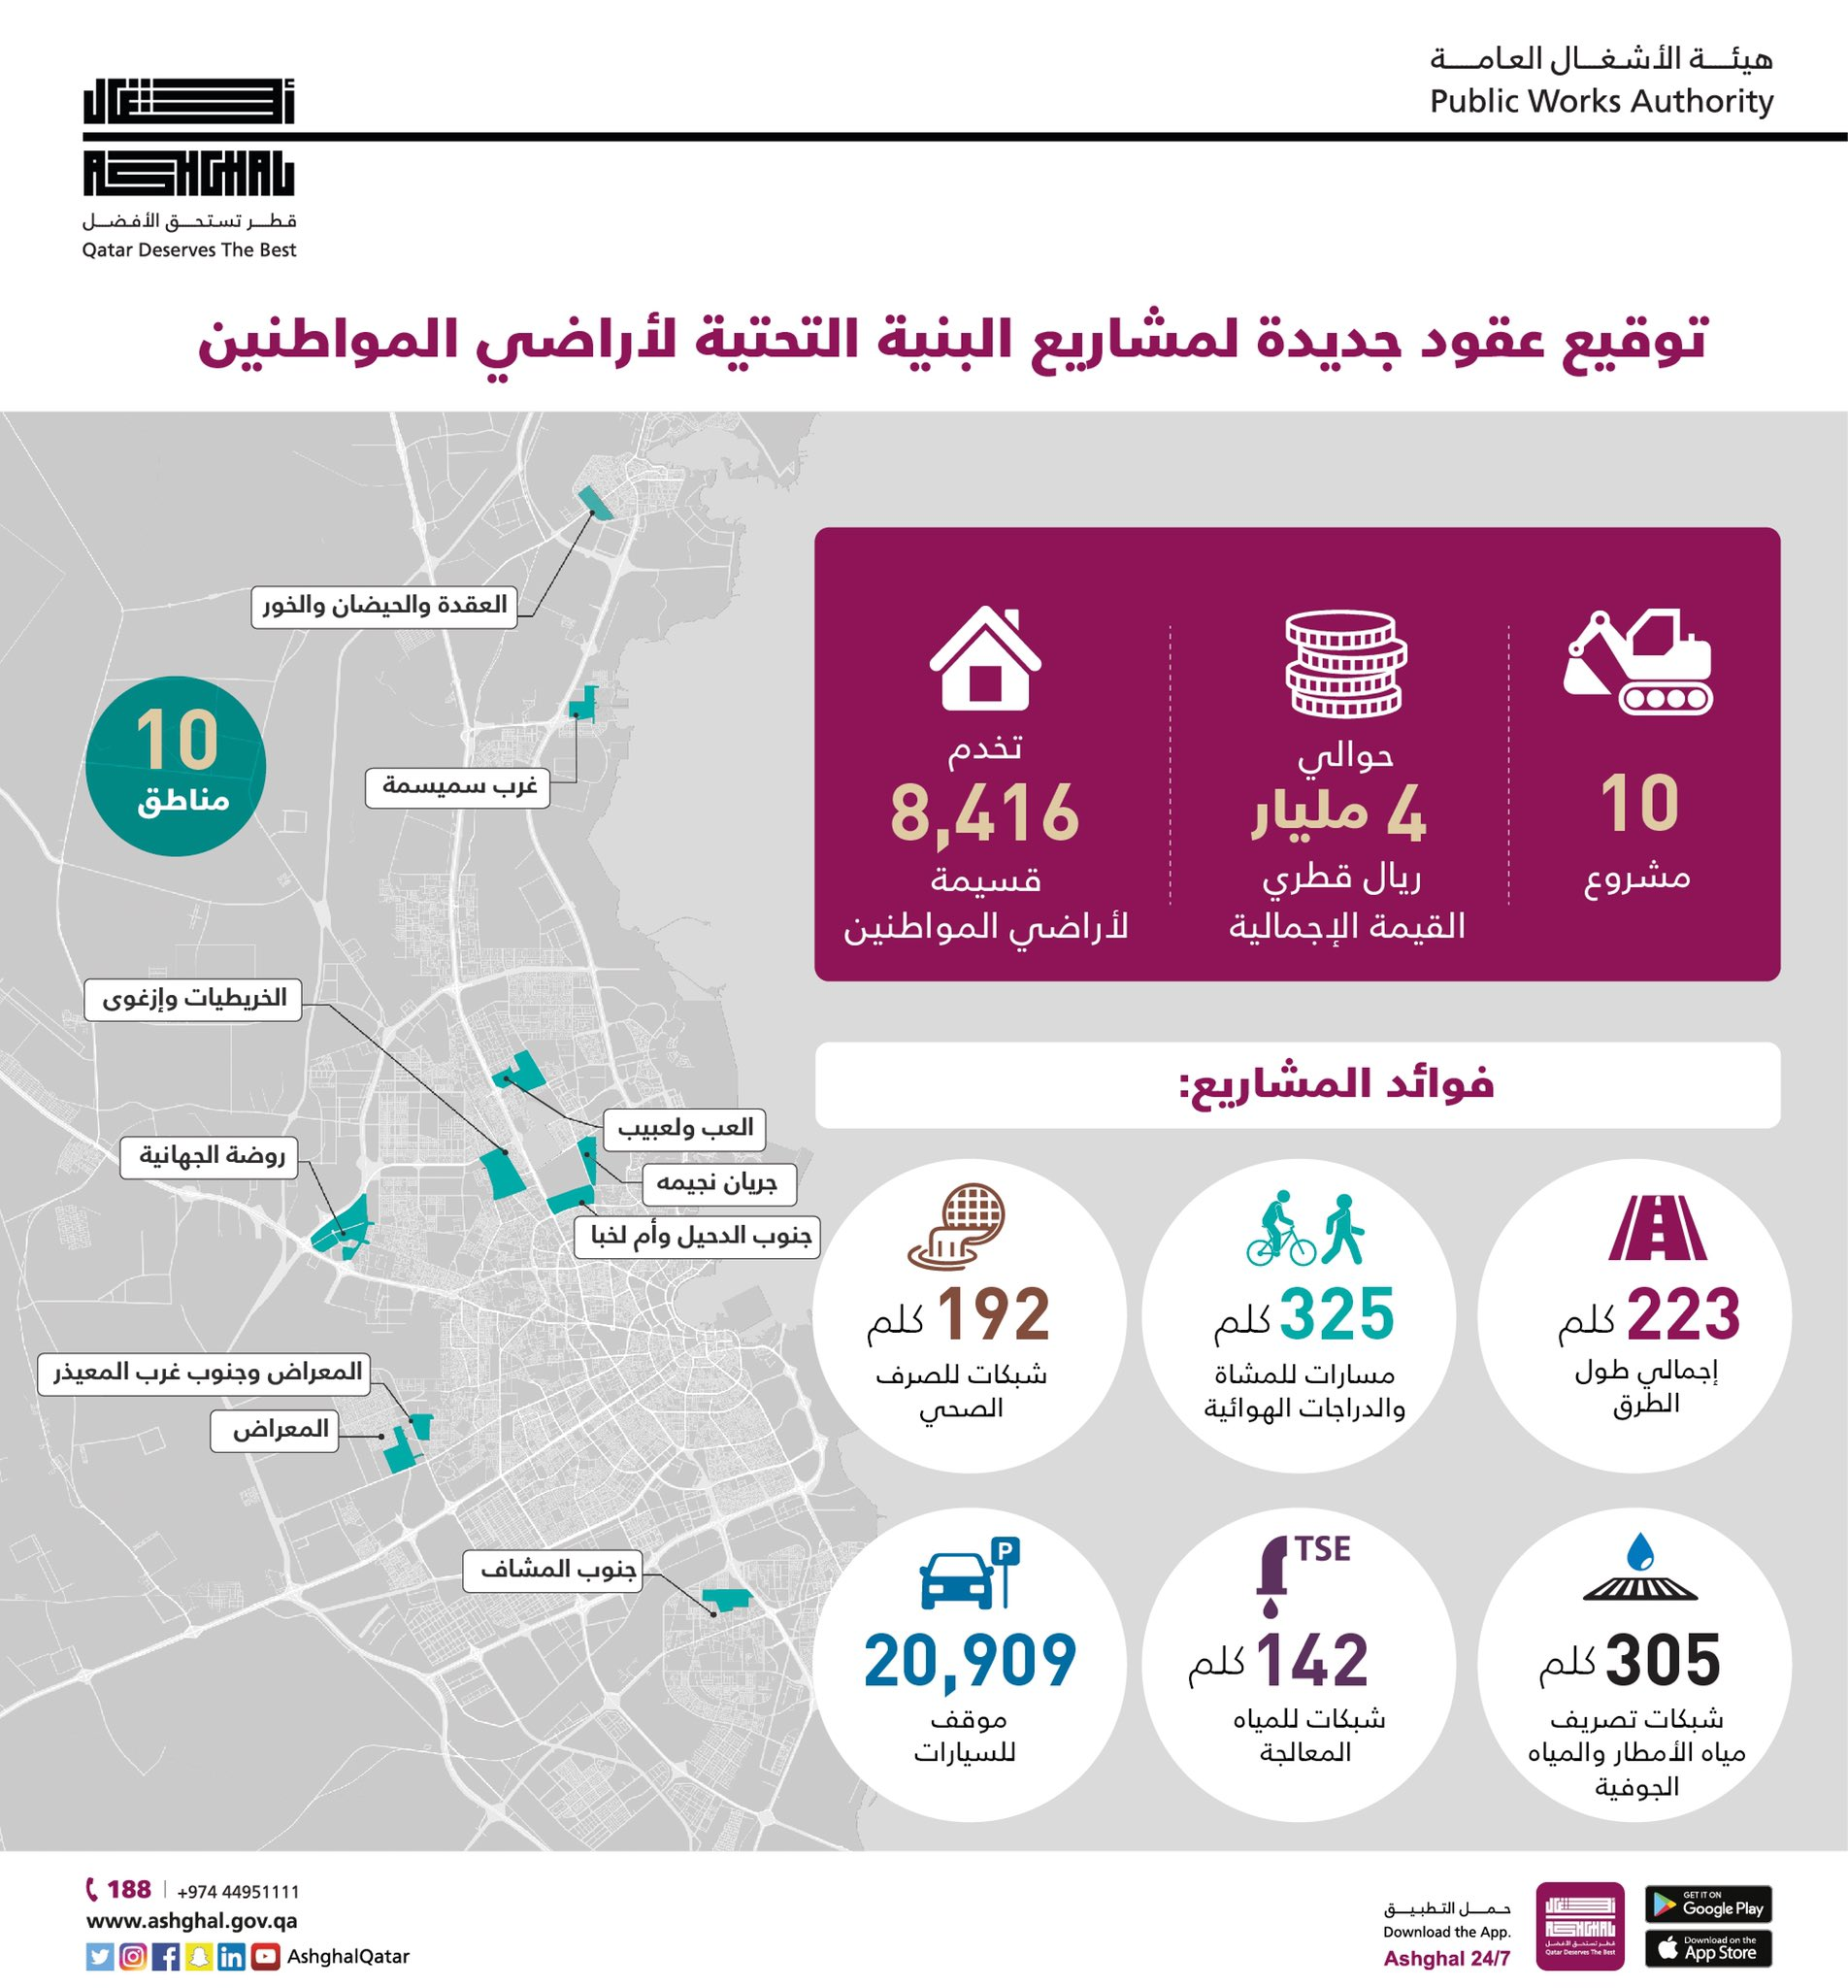 Ashghal Signs 10 New Contracts for Citizens' Sub-division Infrastructure Projects with Qatari Companies Worth Around 4 QR billion